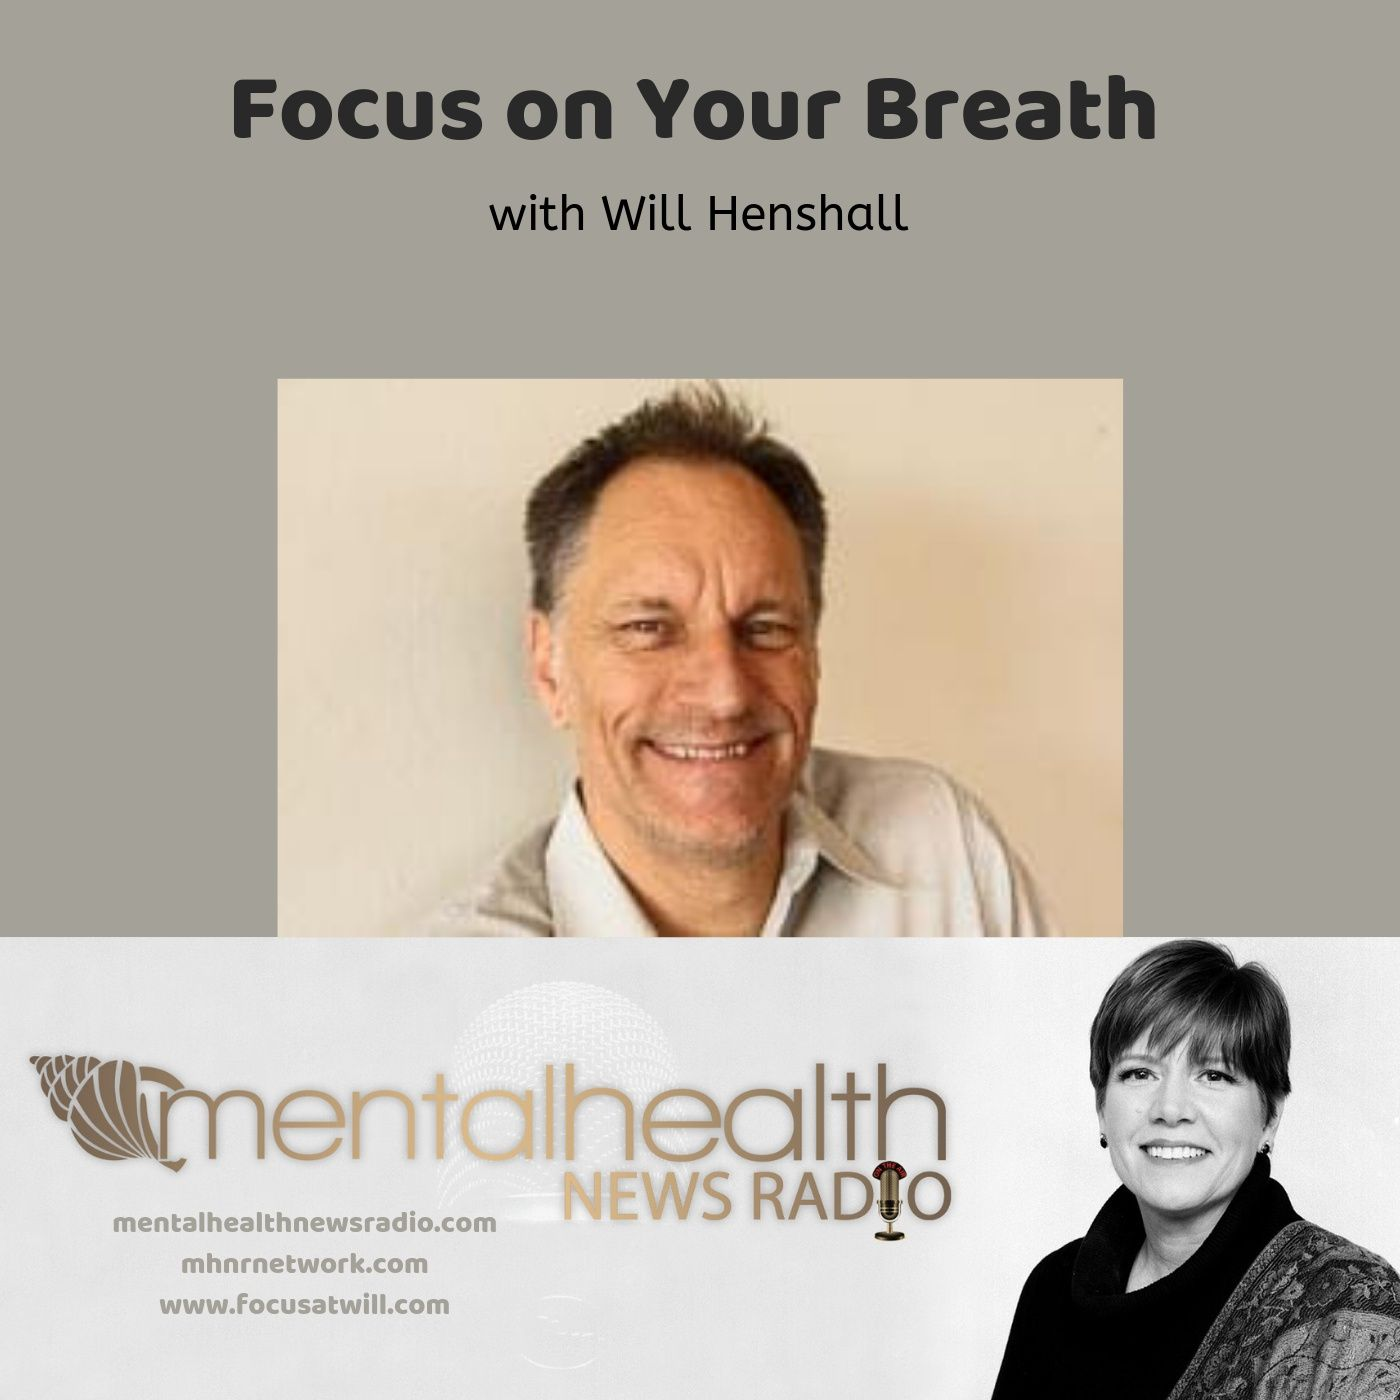 Mental Health News Radio - Focus on Your Breath with Will Henshall